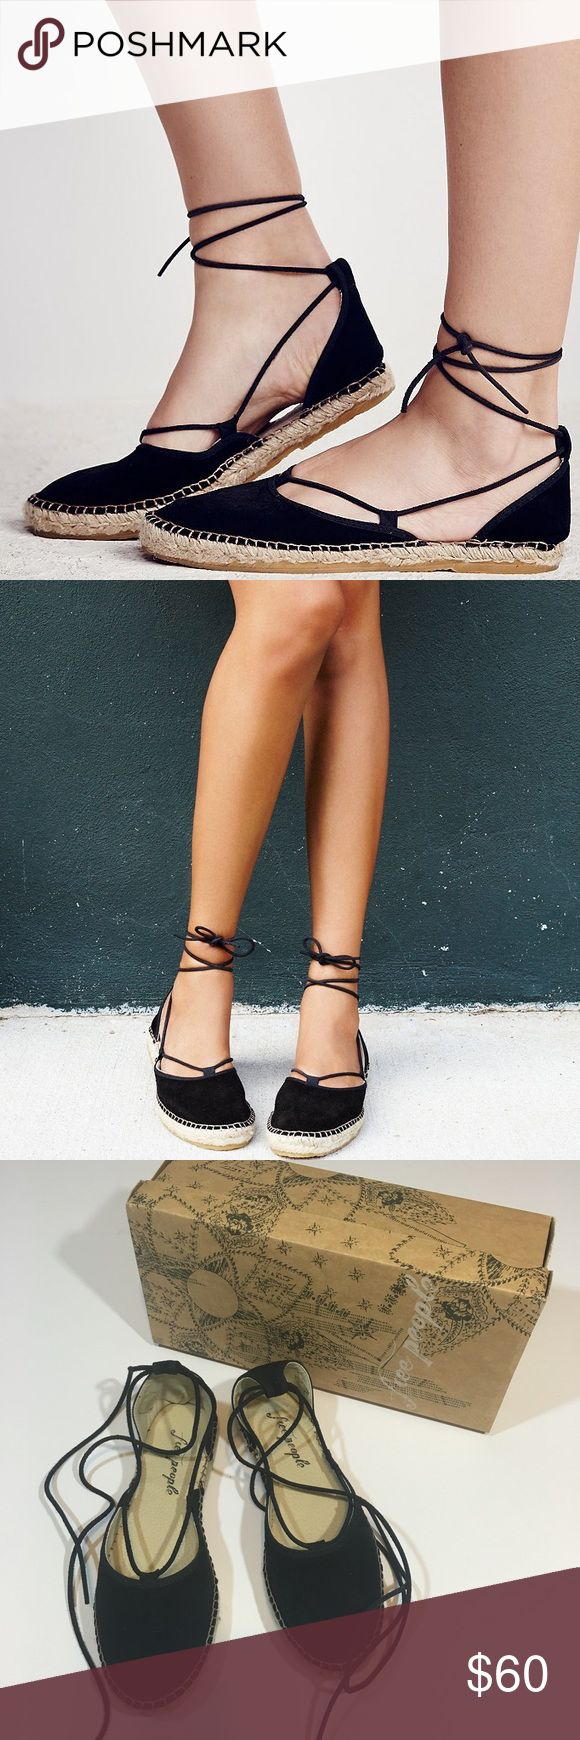 Free People Black Suede Marina Lace Up Espadrille So cute and perfectly on trend! Brand new in the box. Size 6. Black suede. No trades!! 012217130mf Free People Shoes Espadrilles